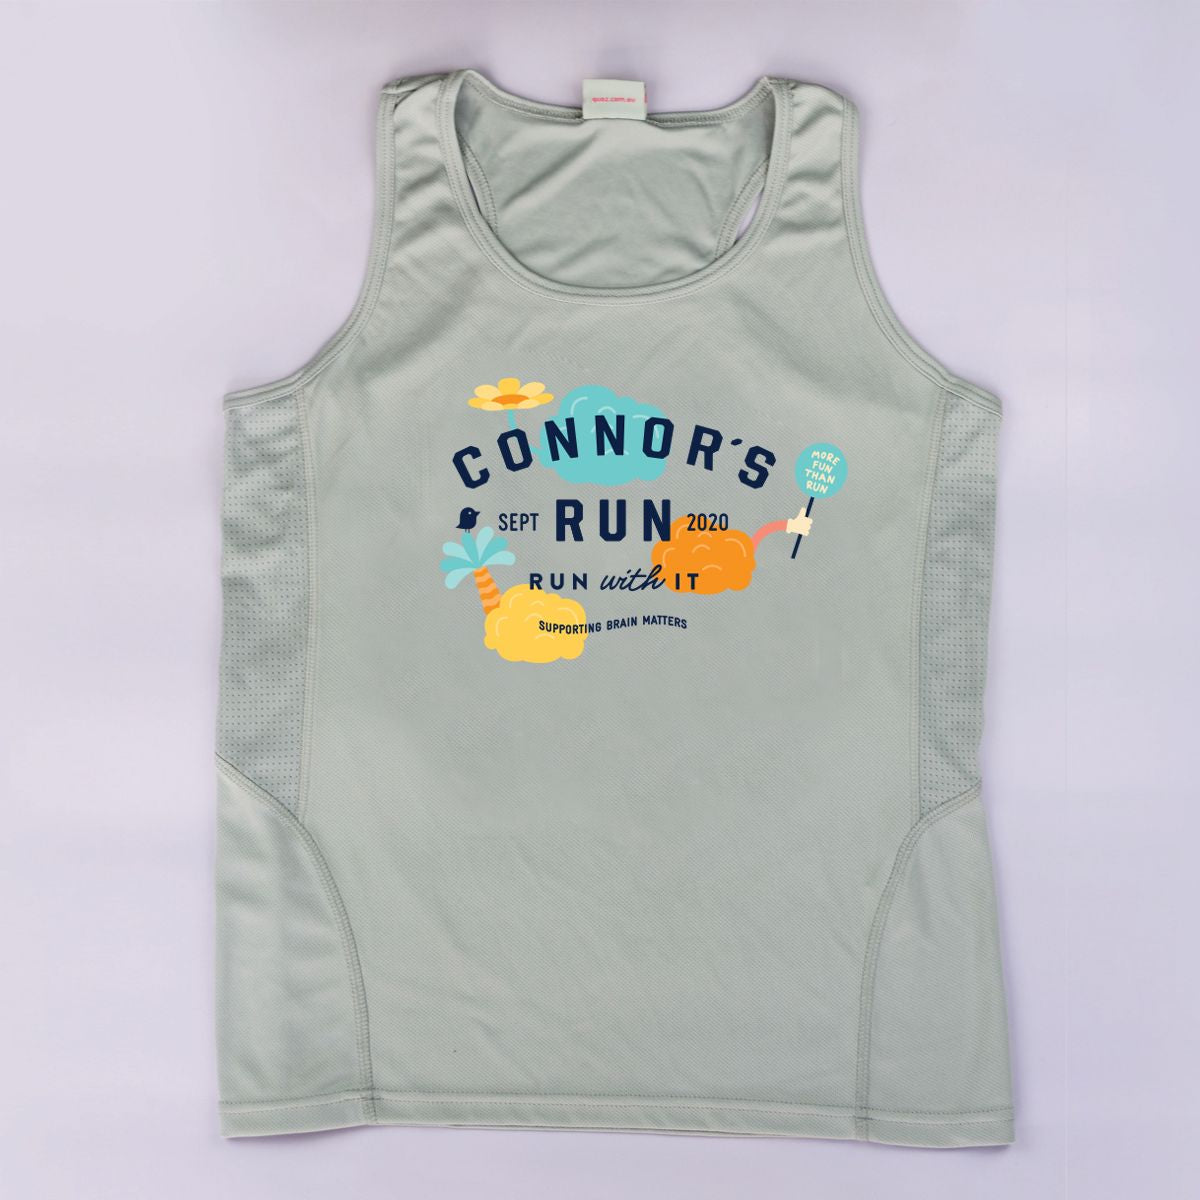 2020 Connor's Run singlet